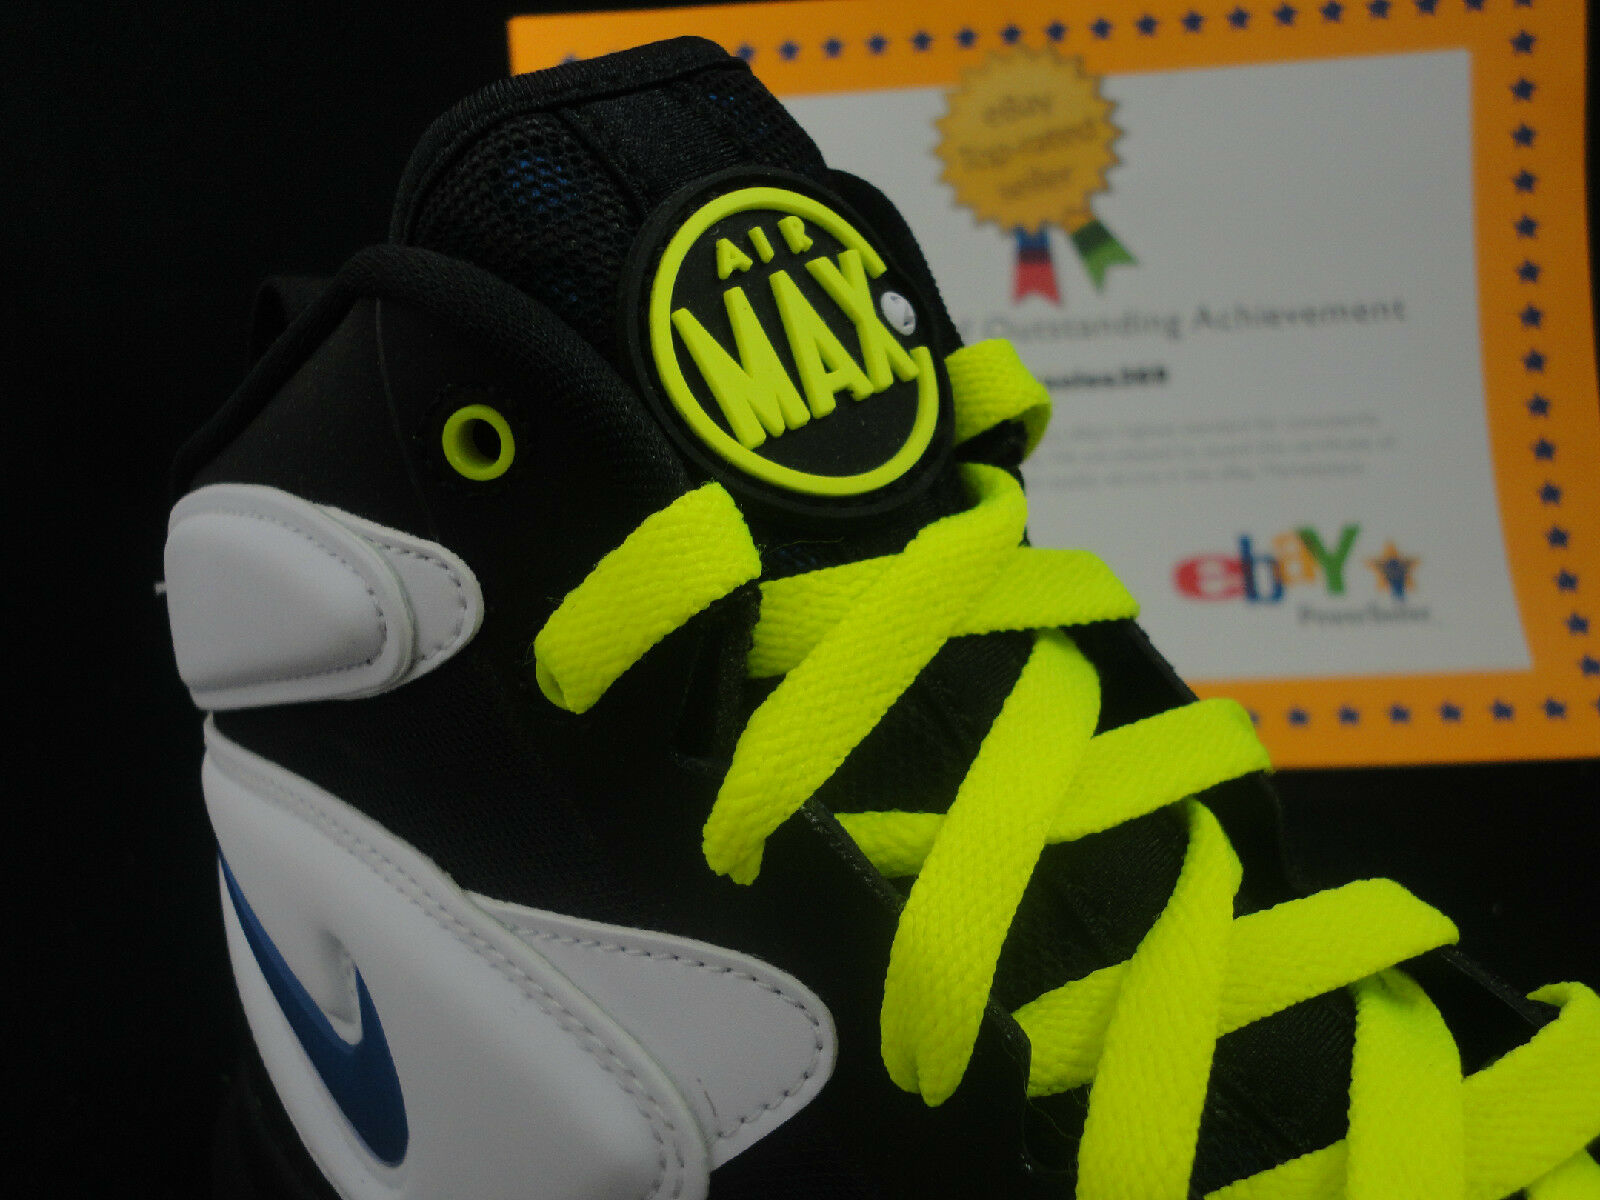 Nike Air Max SQ Uptempo Total ZM, Uptempo 2, Total Uptempo Air, Retail $190, Size 9.5 3233b9